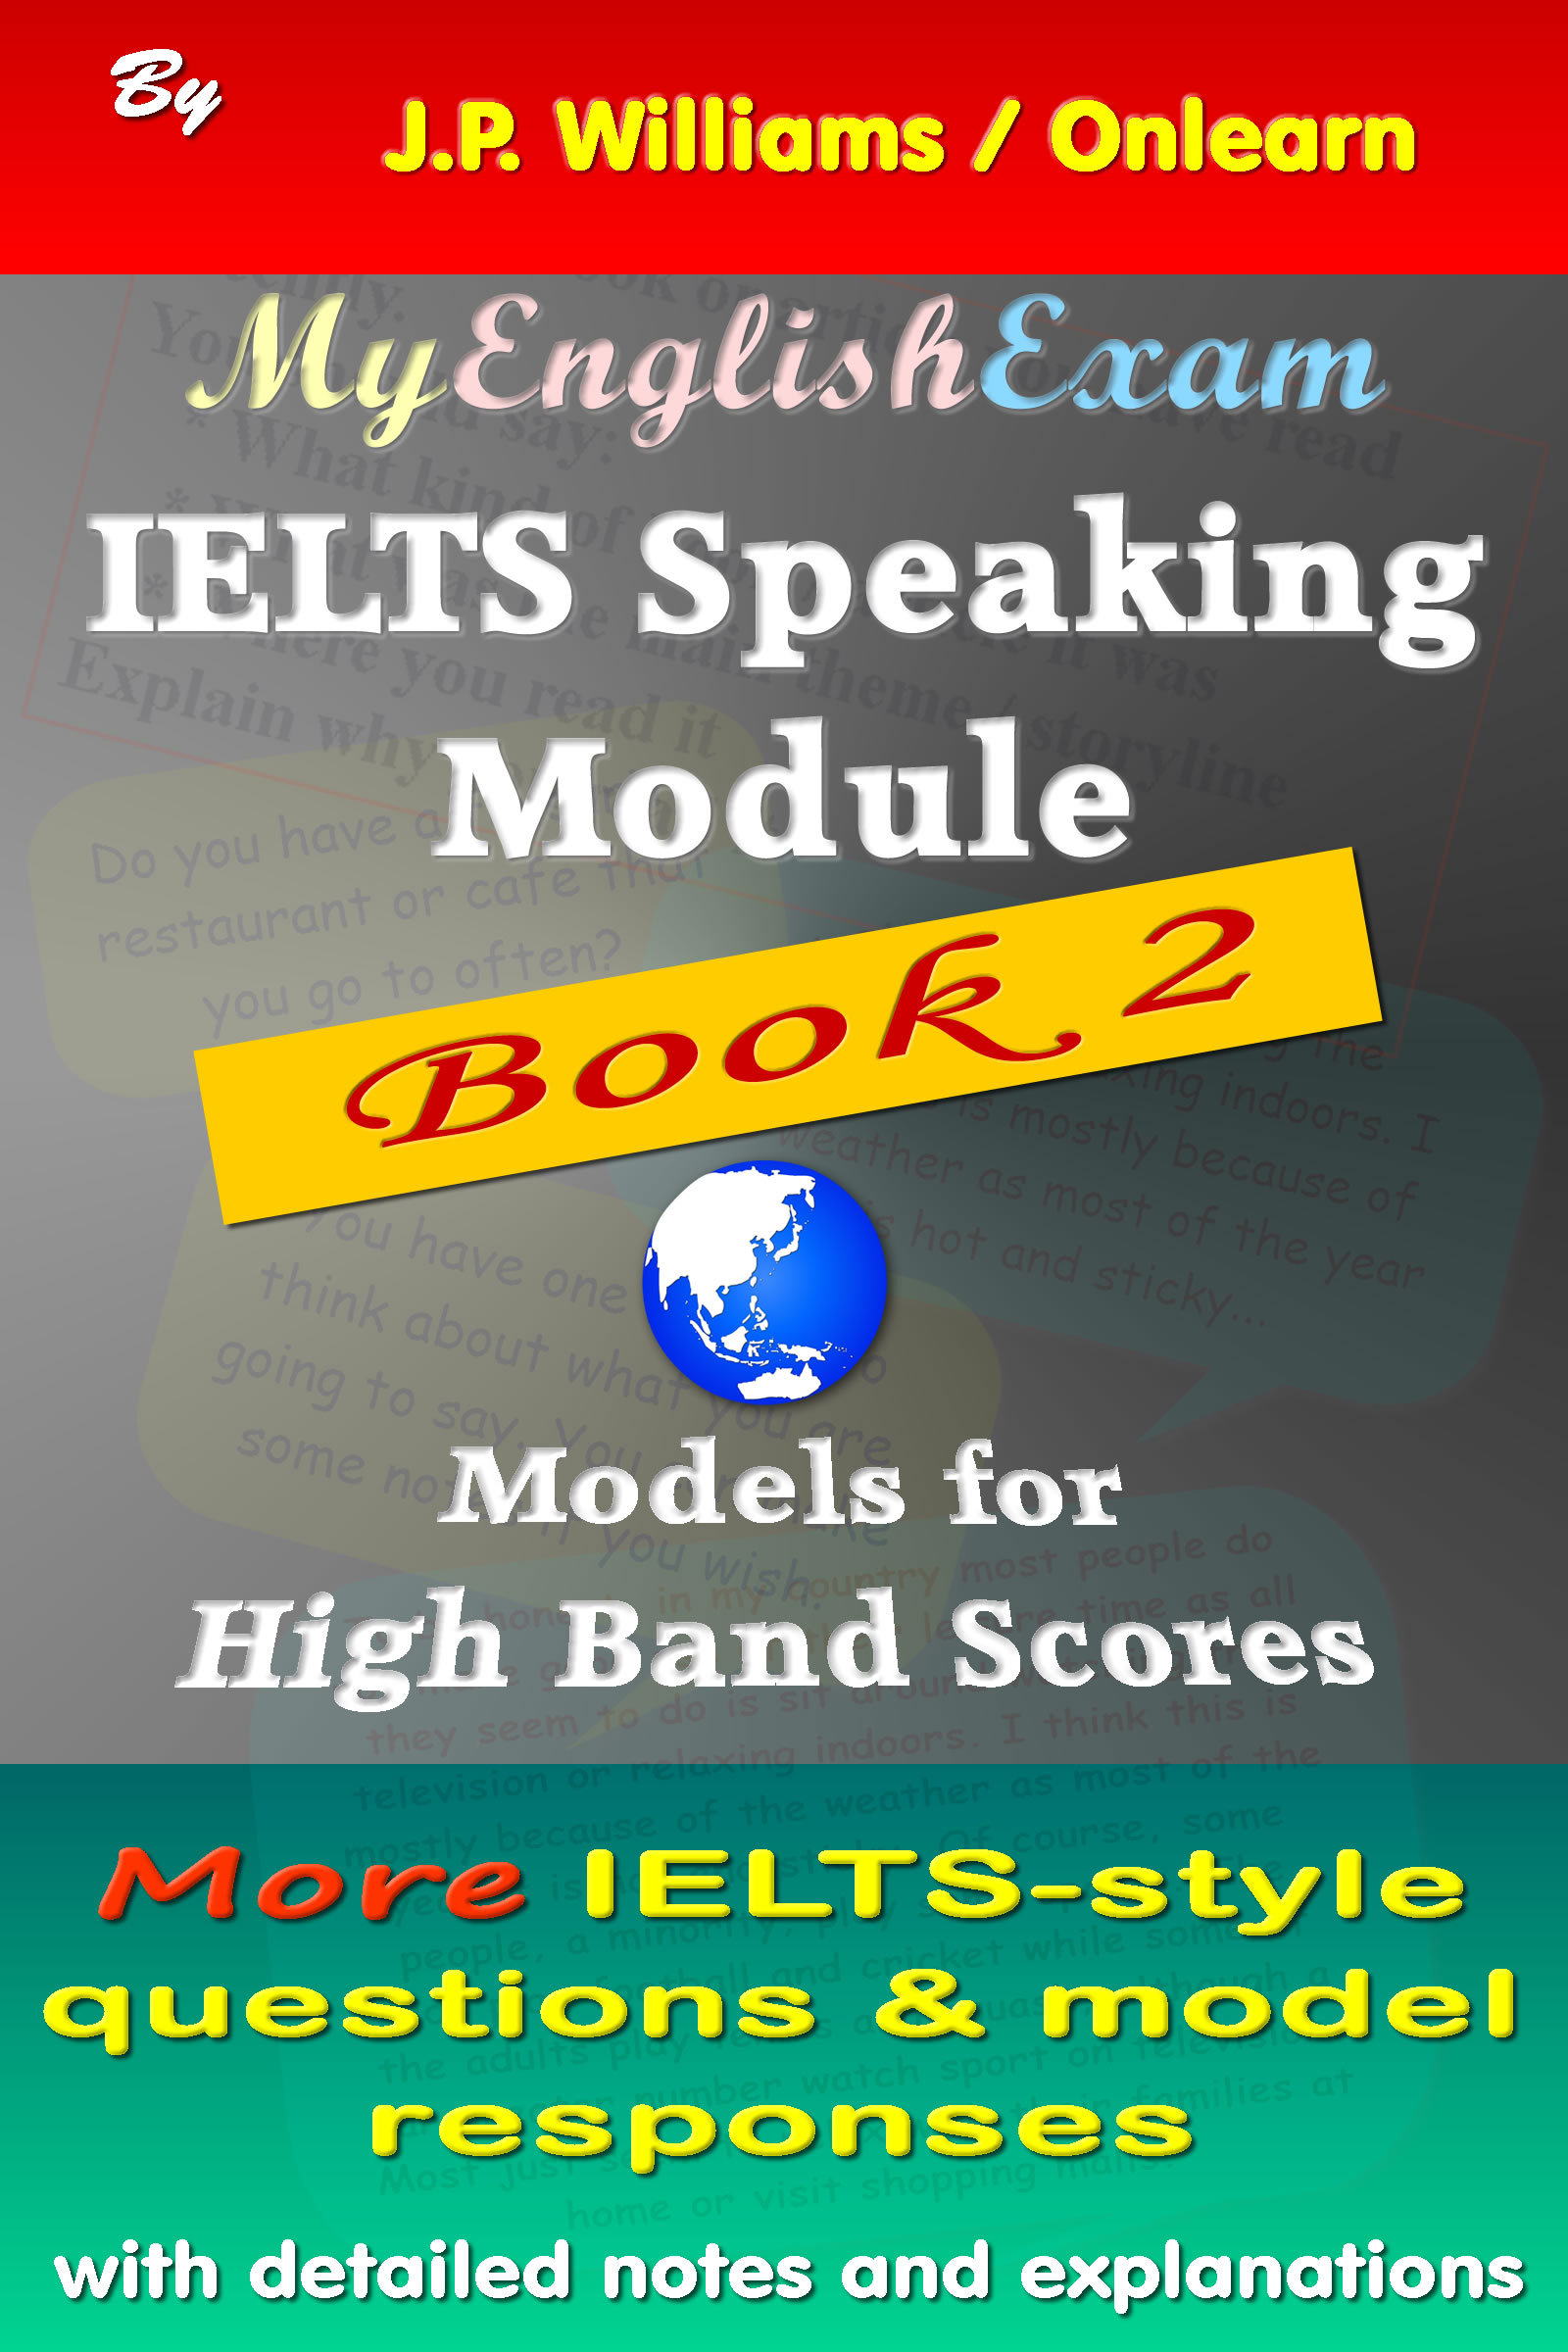 IELTS Speaking Module Book 2: Model Responses for High Band Scores